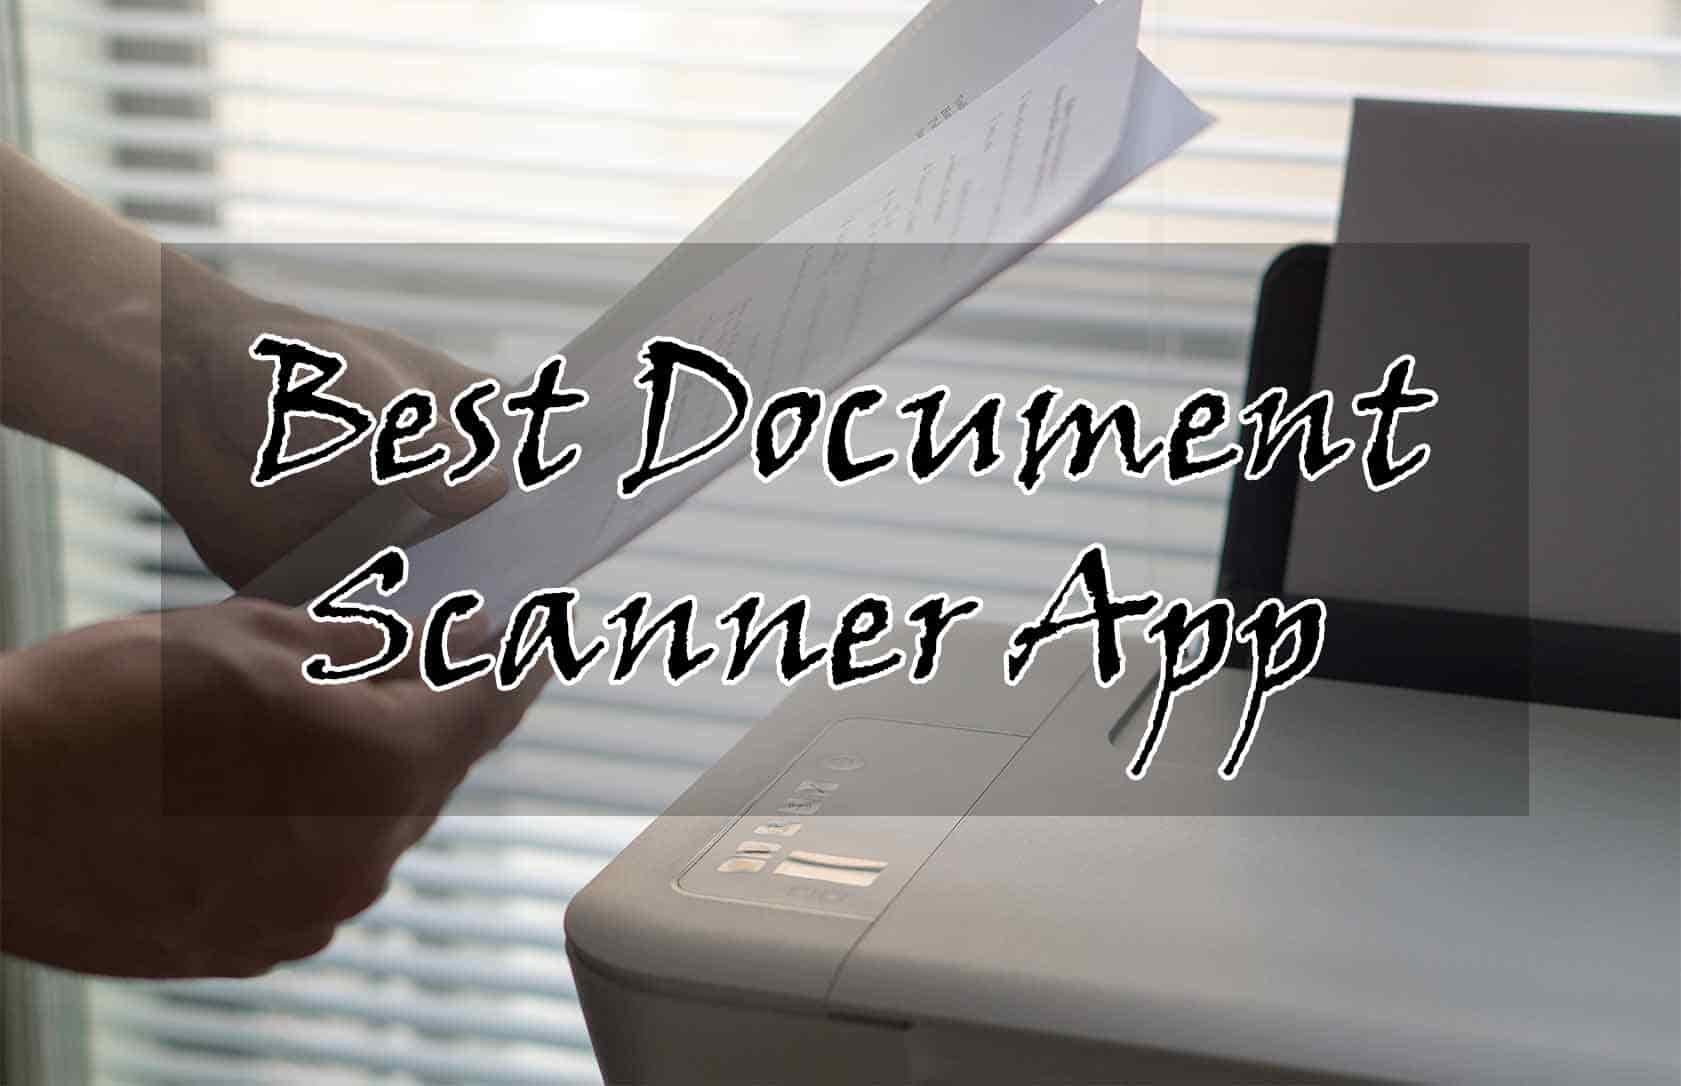 13 Best Document Scanner App For Android - Trick Xpert